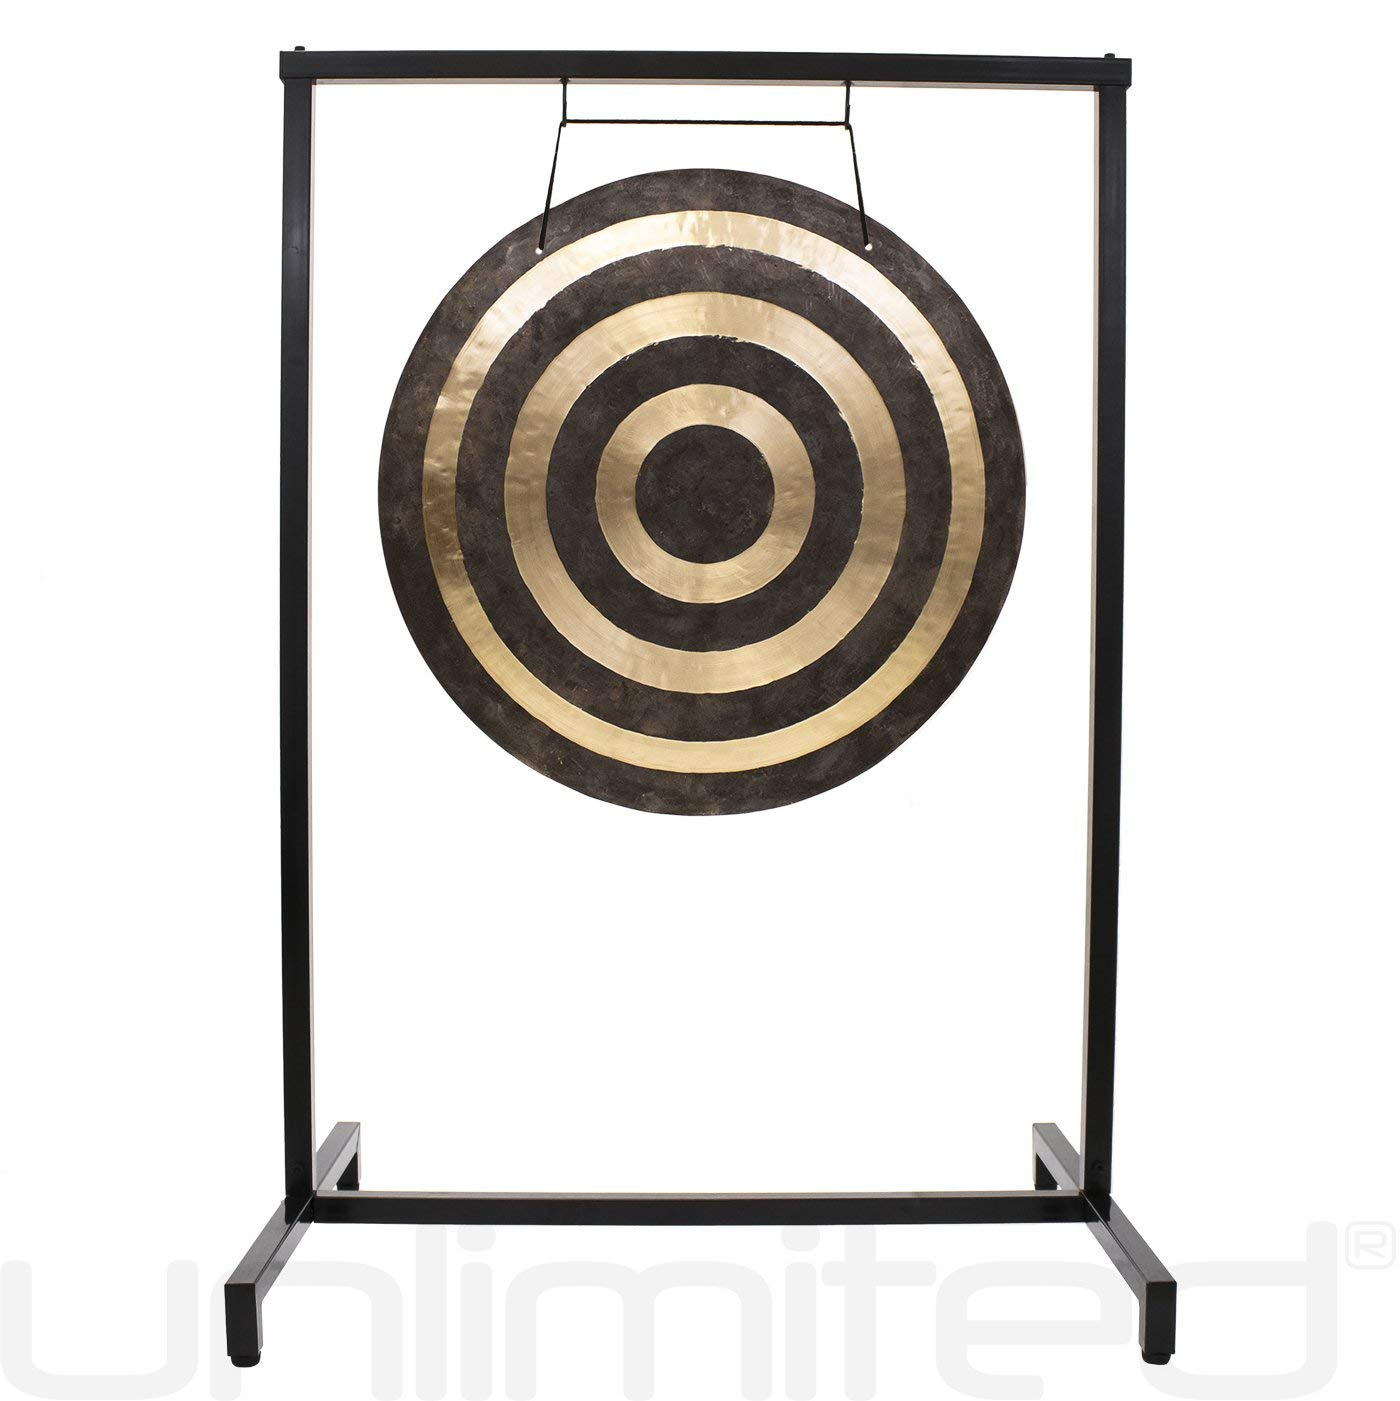 22'' to 28'' Gongs on the Everyday Miracle Gong Stand by Unlimited